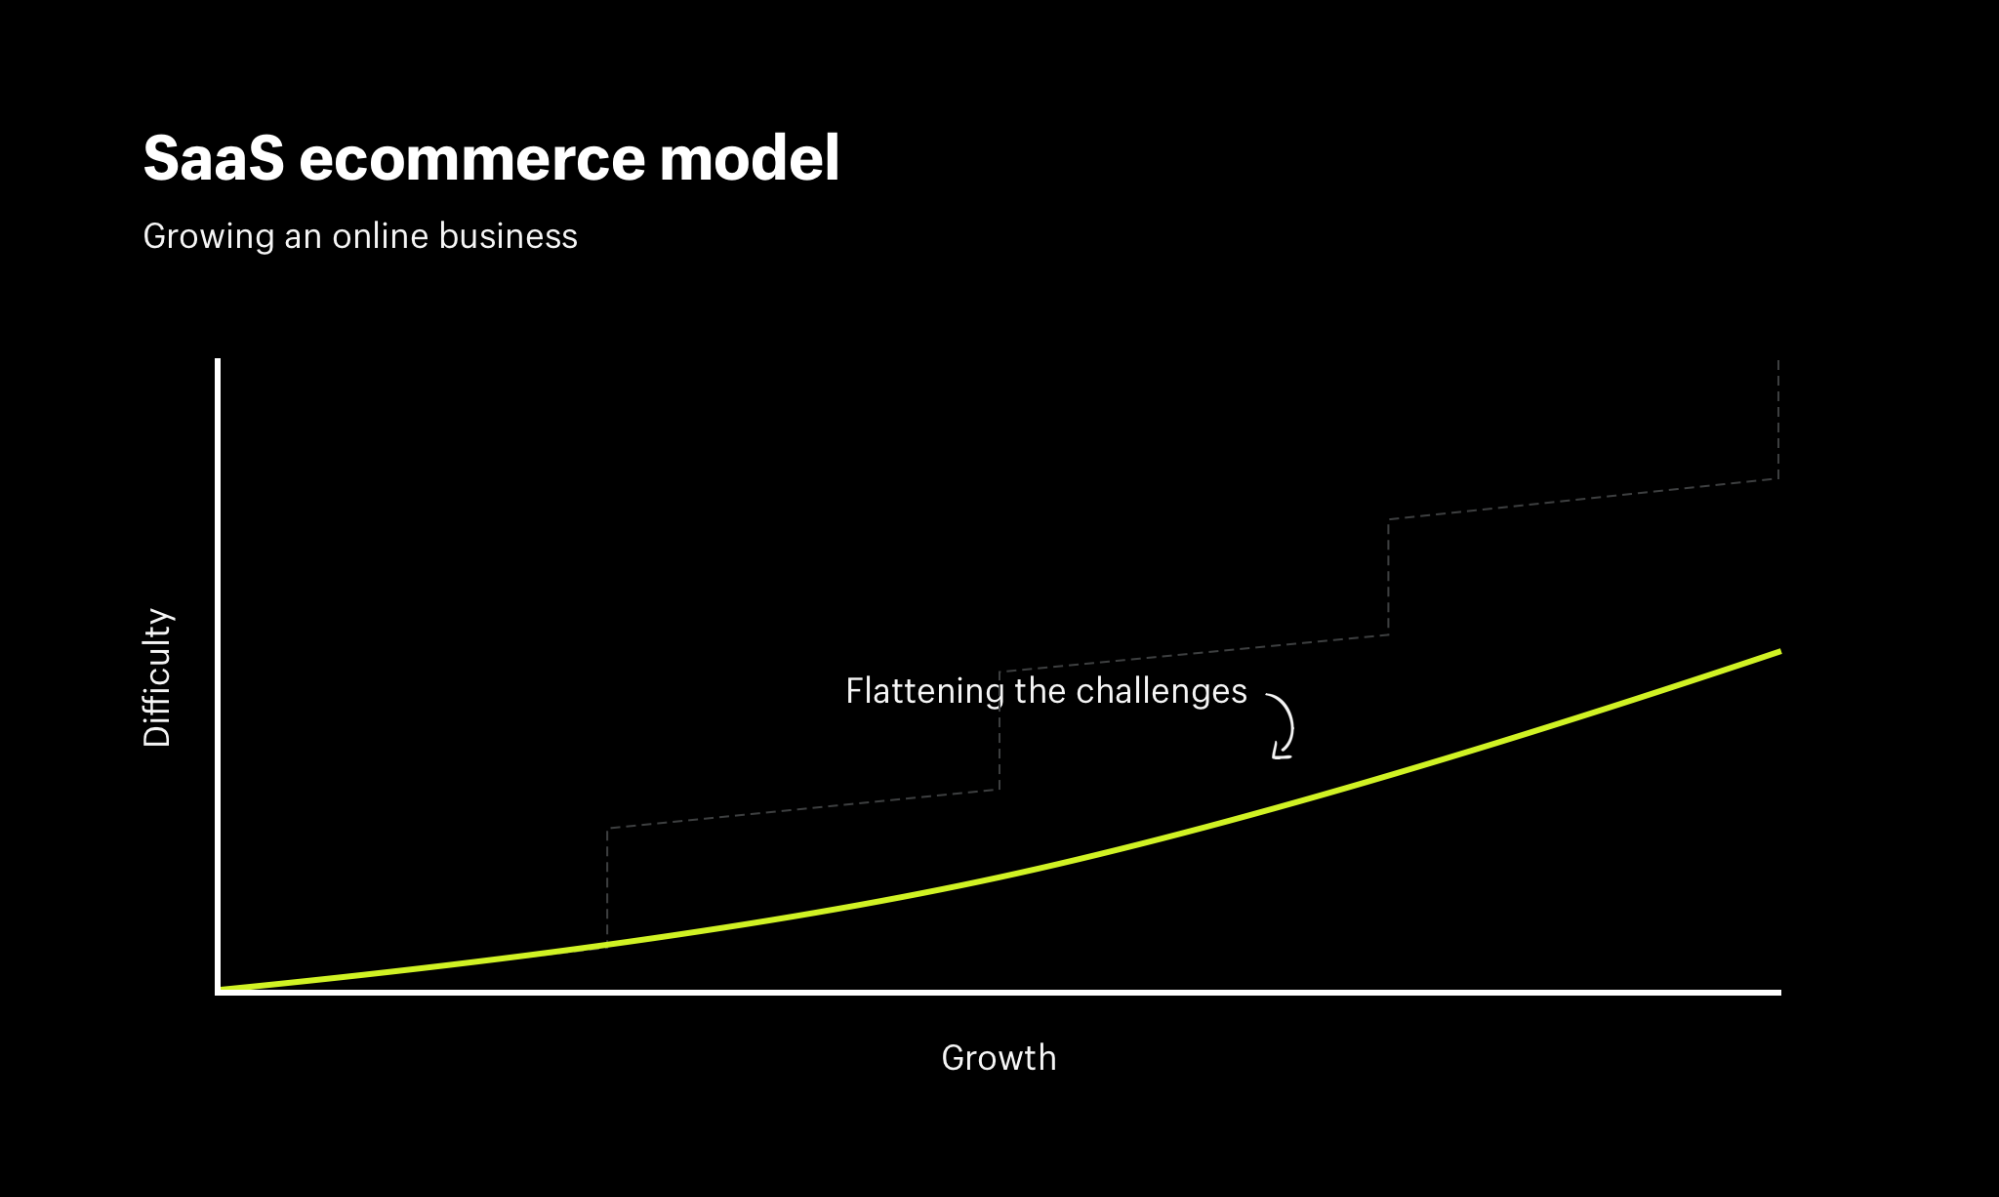 Ecommerce SaaS reduced complexity significantly